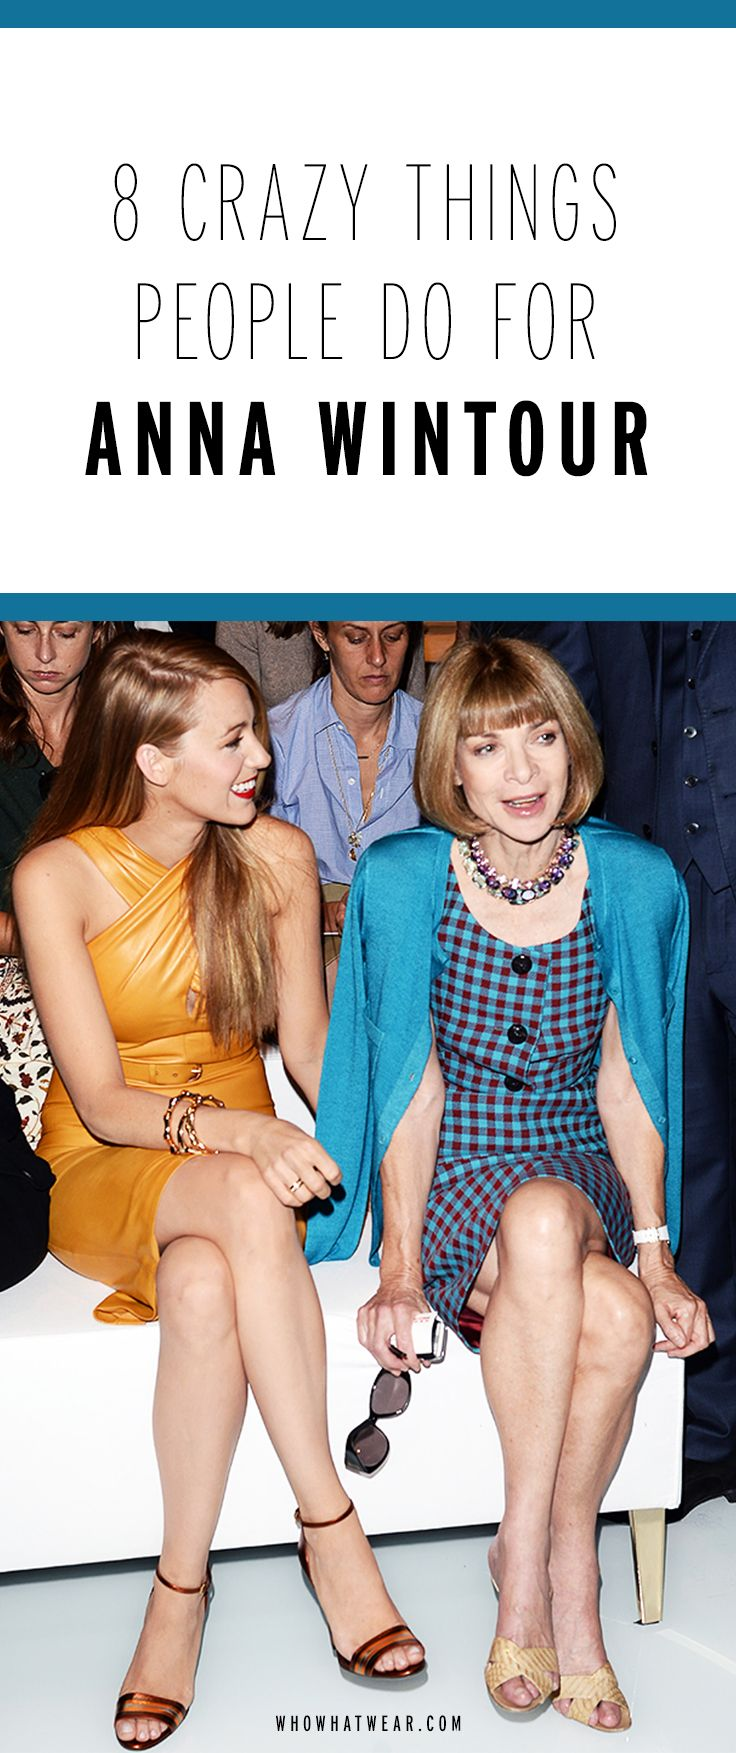 ~Anna Wintour proves she is still the most influential voice in fashion | House of Beccaria